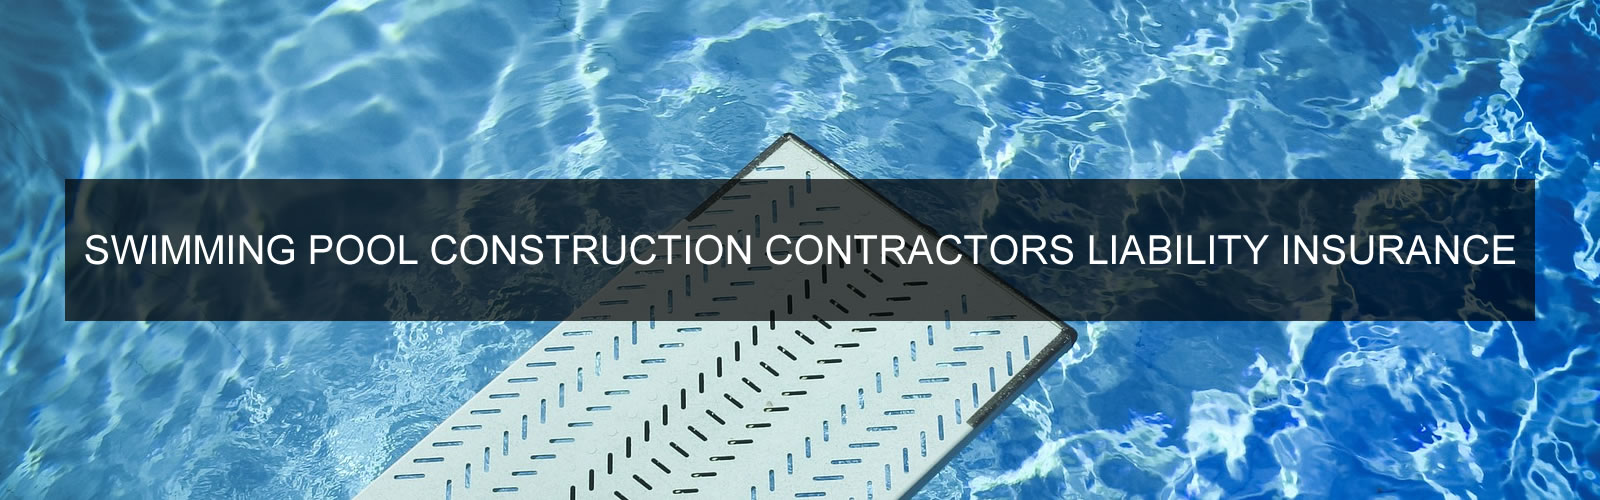 Swimming Pool Construction Contractors Liability Insurance